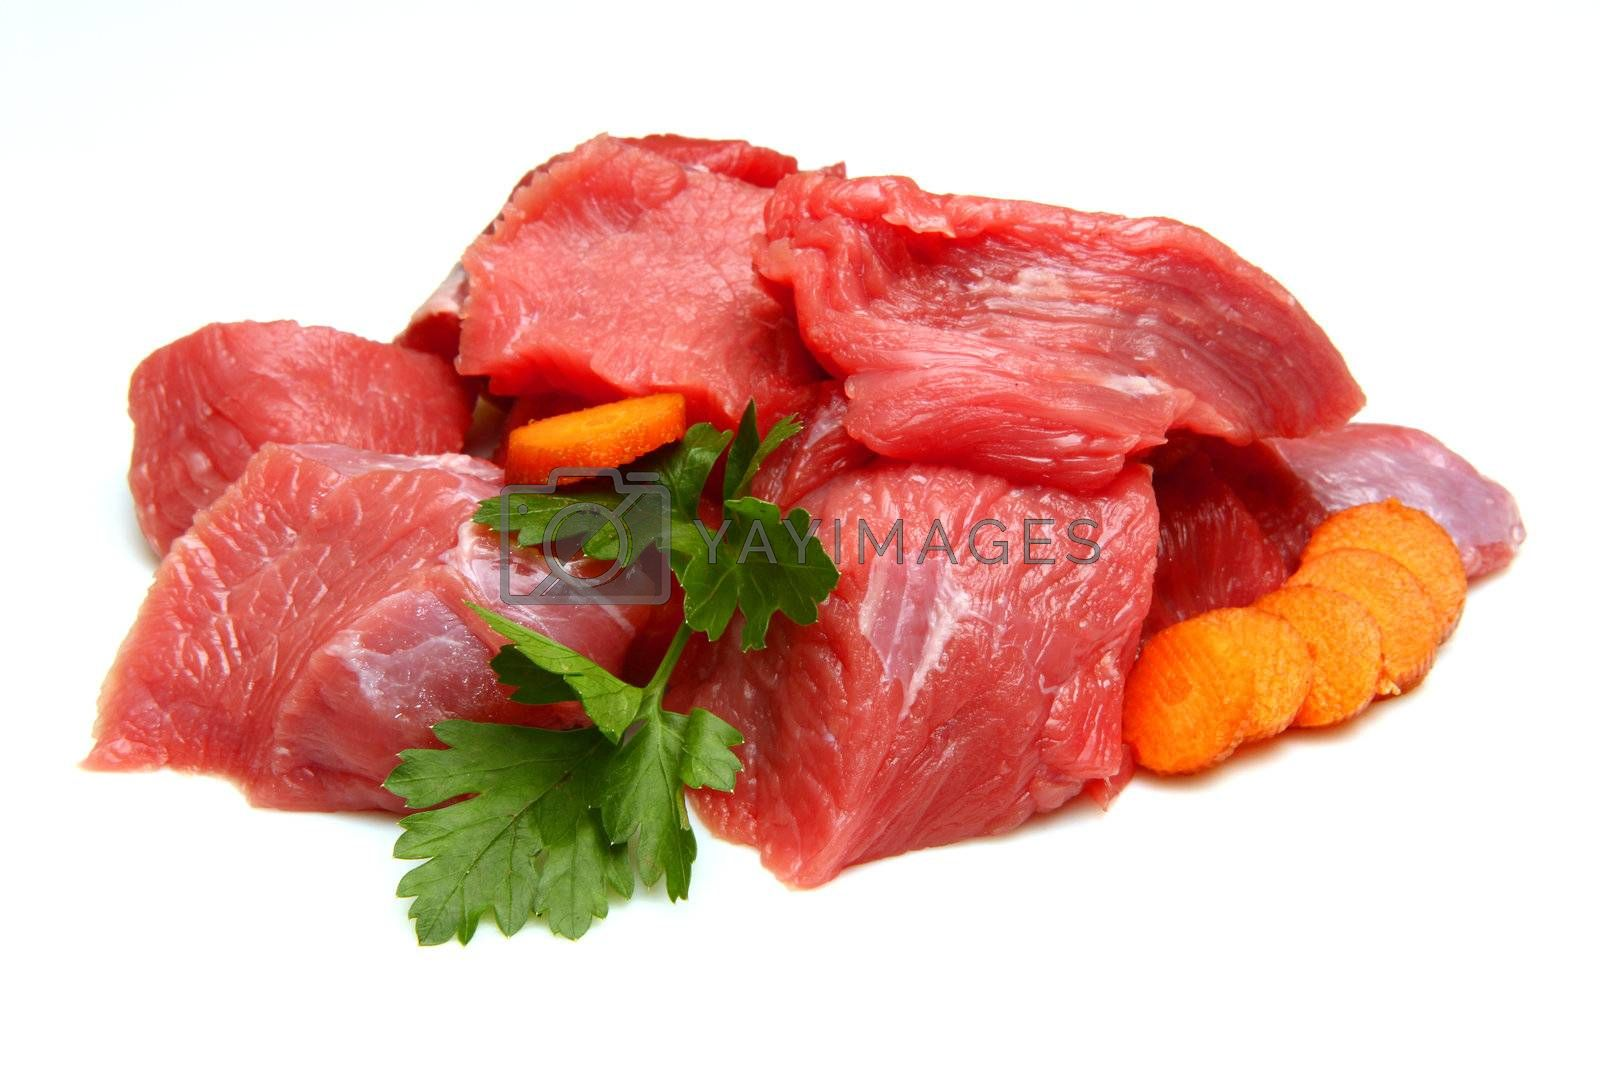 Raw fresh meat sliced in cubes